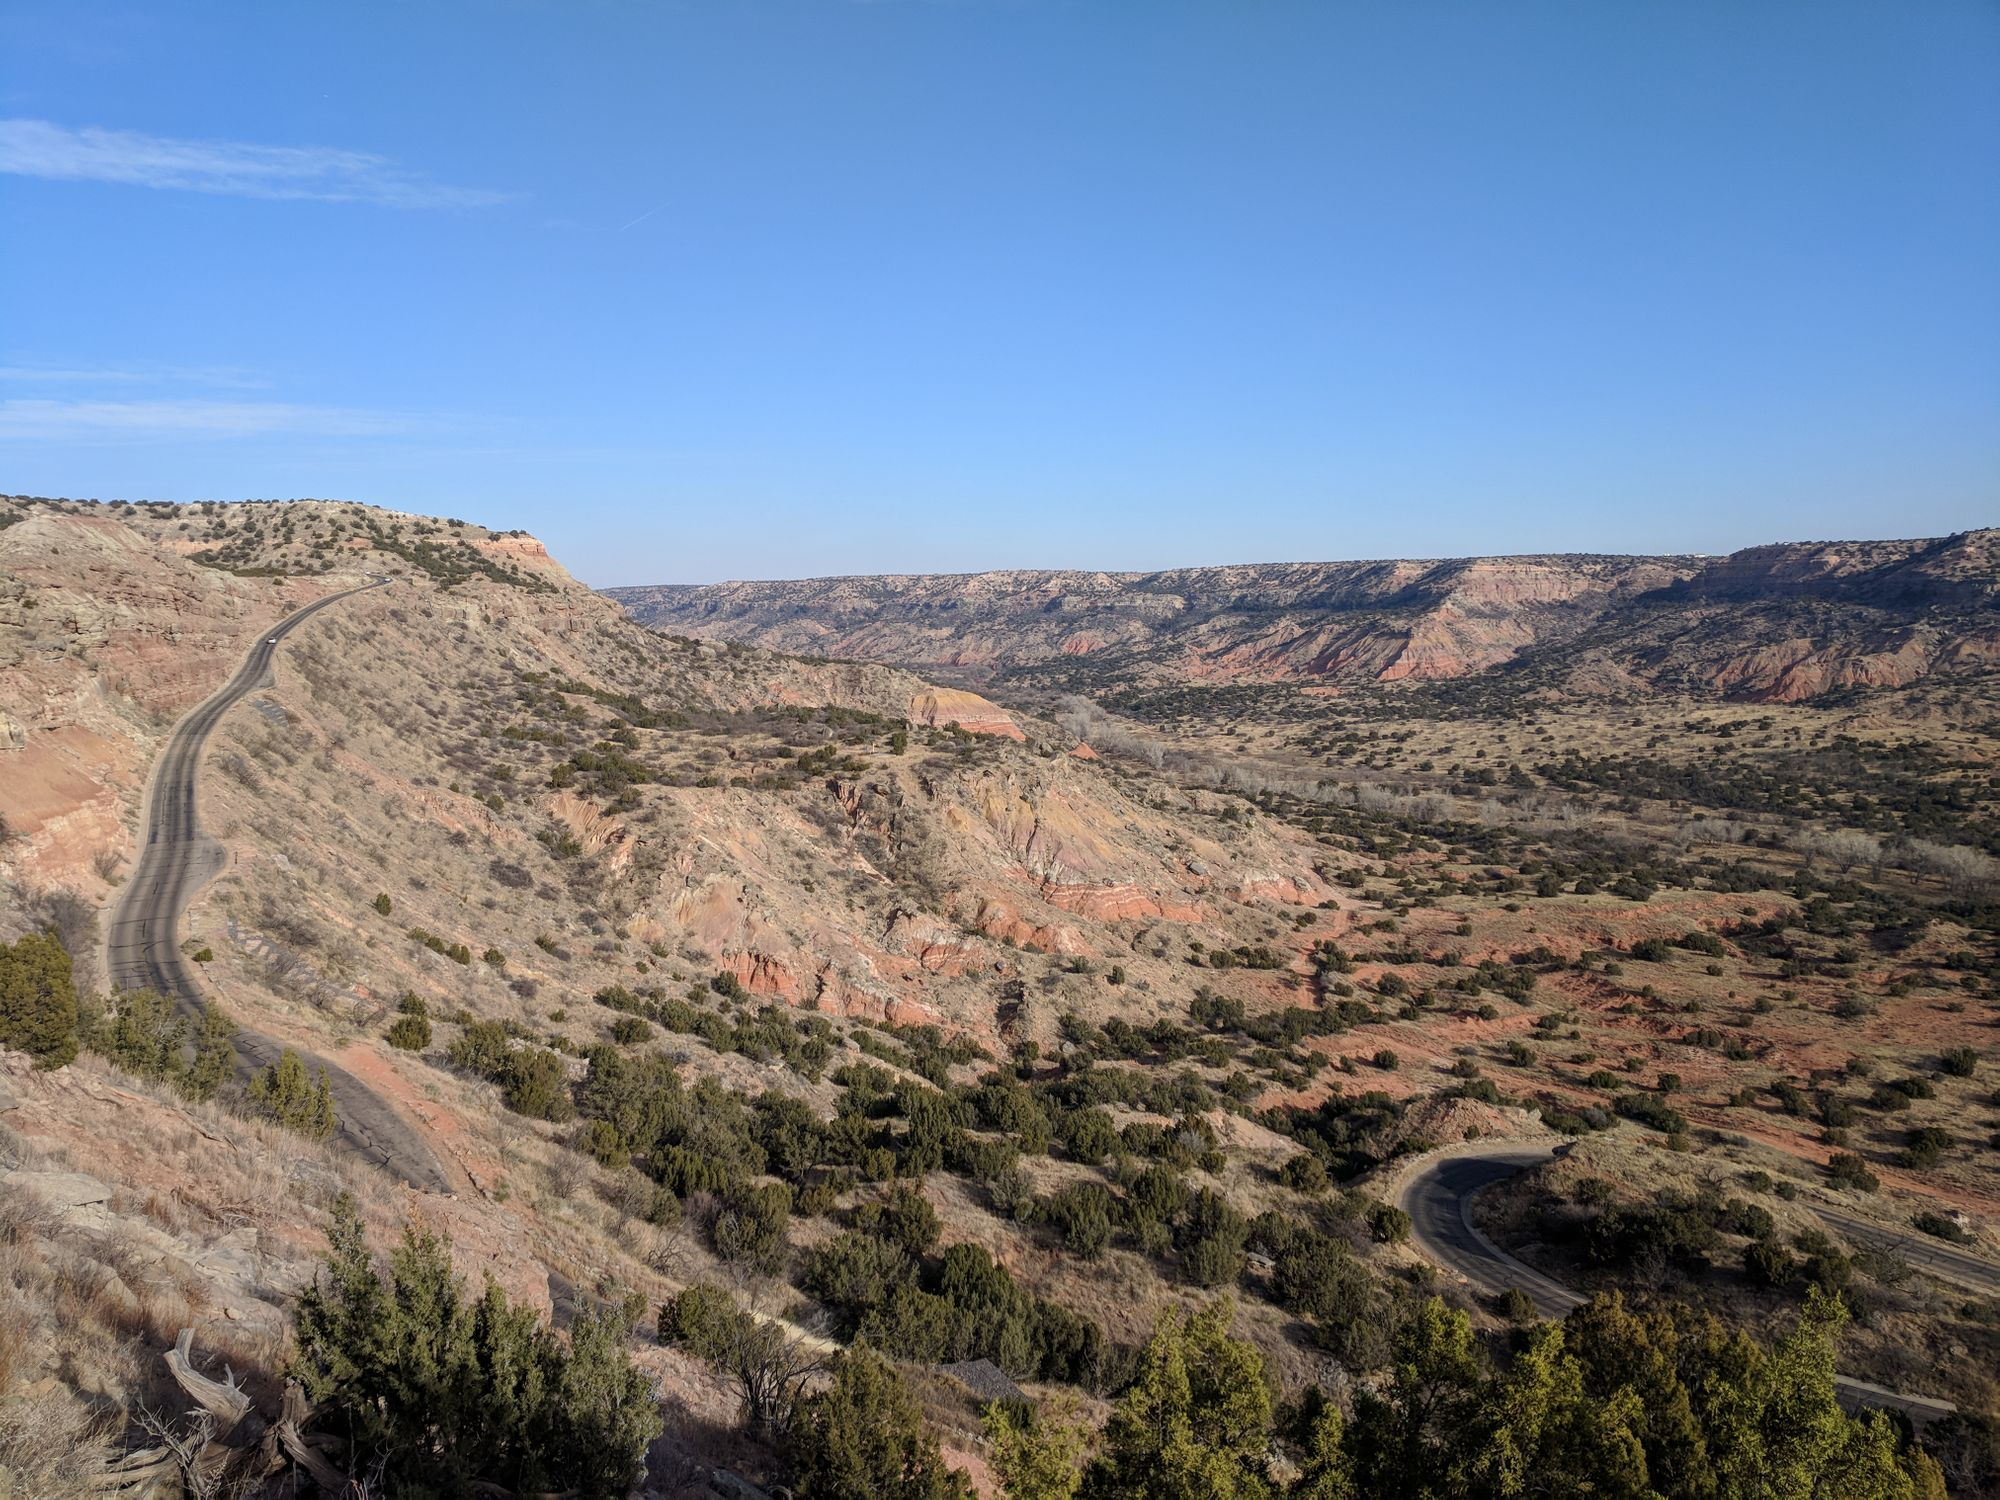 Road Trip: Palo Duro Canyon State Park